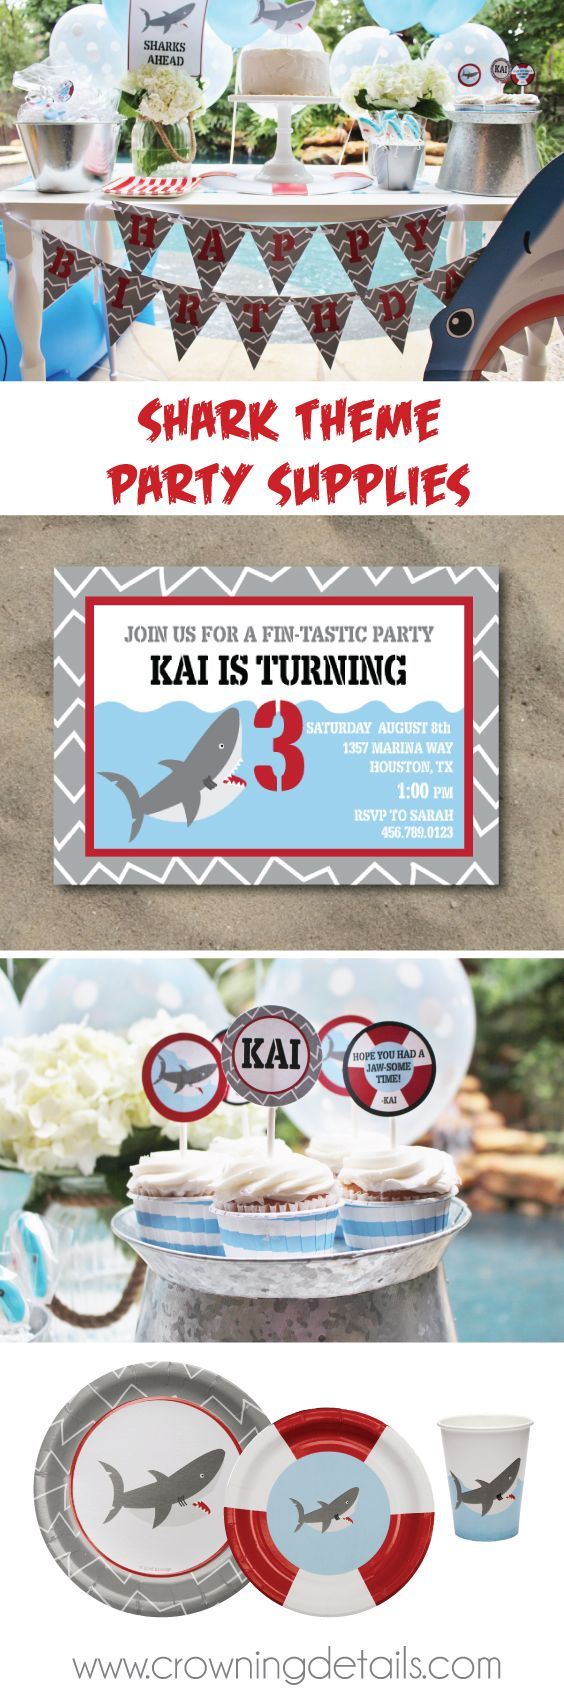 Shark party supplies for a fintastic birthday party Shop the